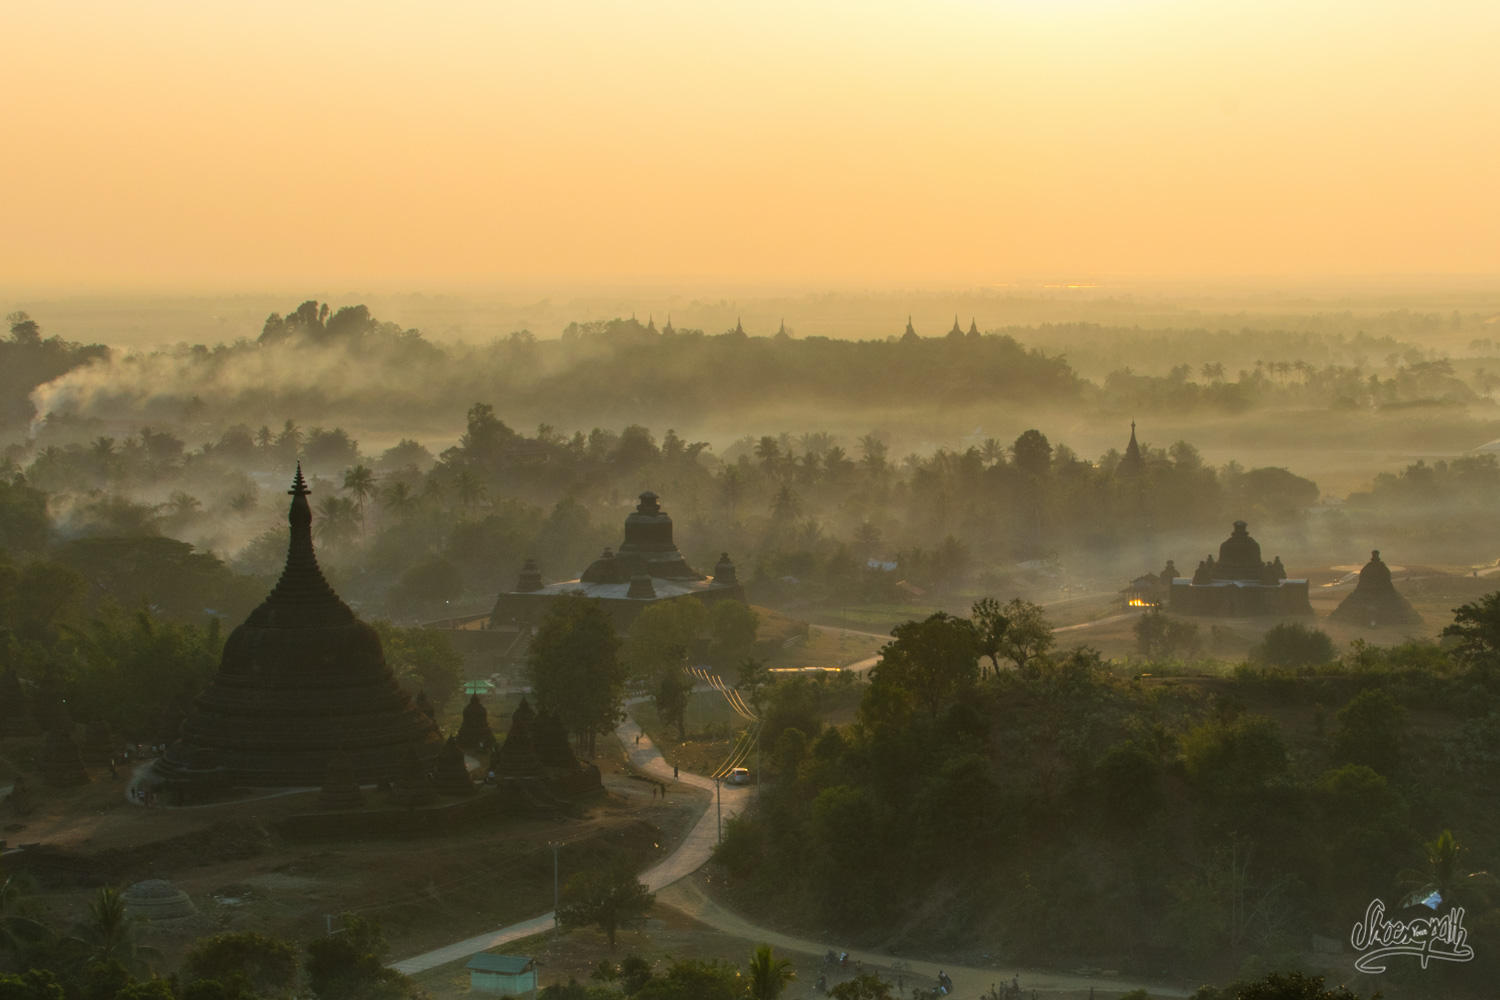 Myanmar – Ngapali Beach And Mrauk U